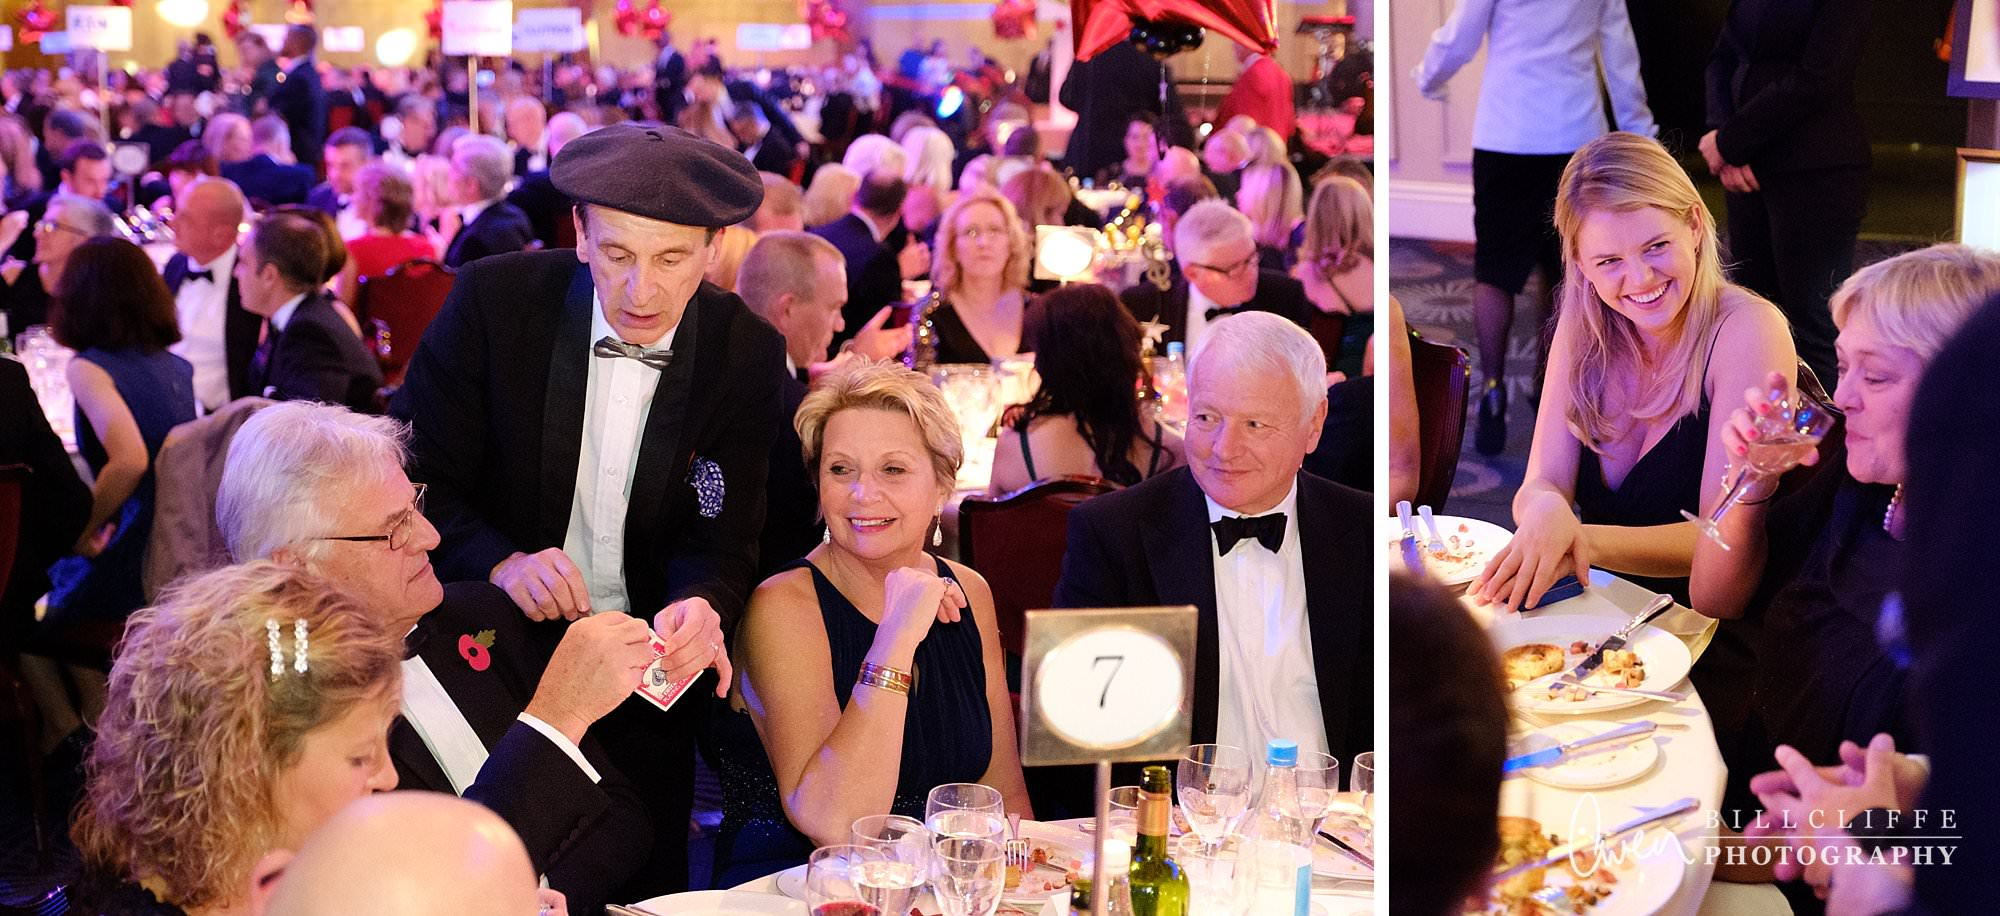 london event photographer park lane pb 010 - A Luxury Ball at Grosvenor House Park Lane